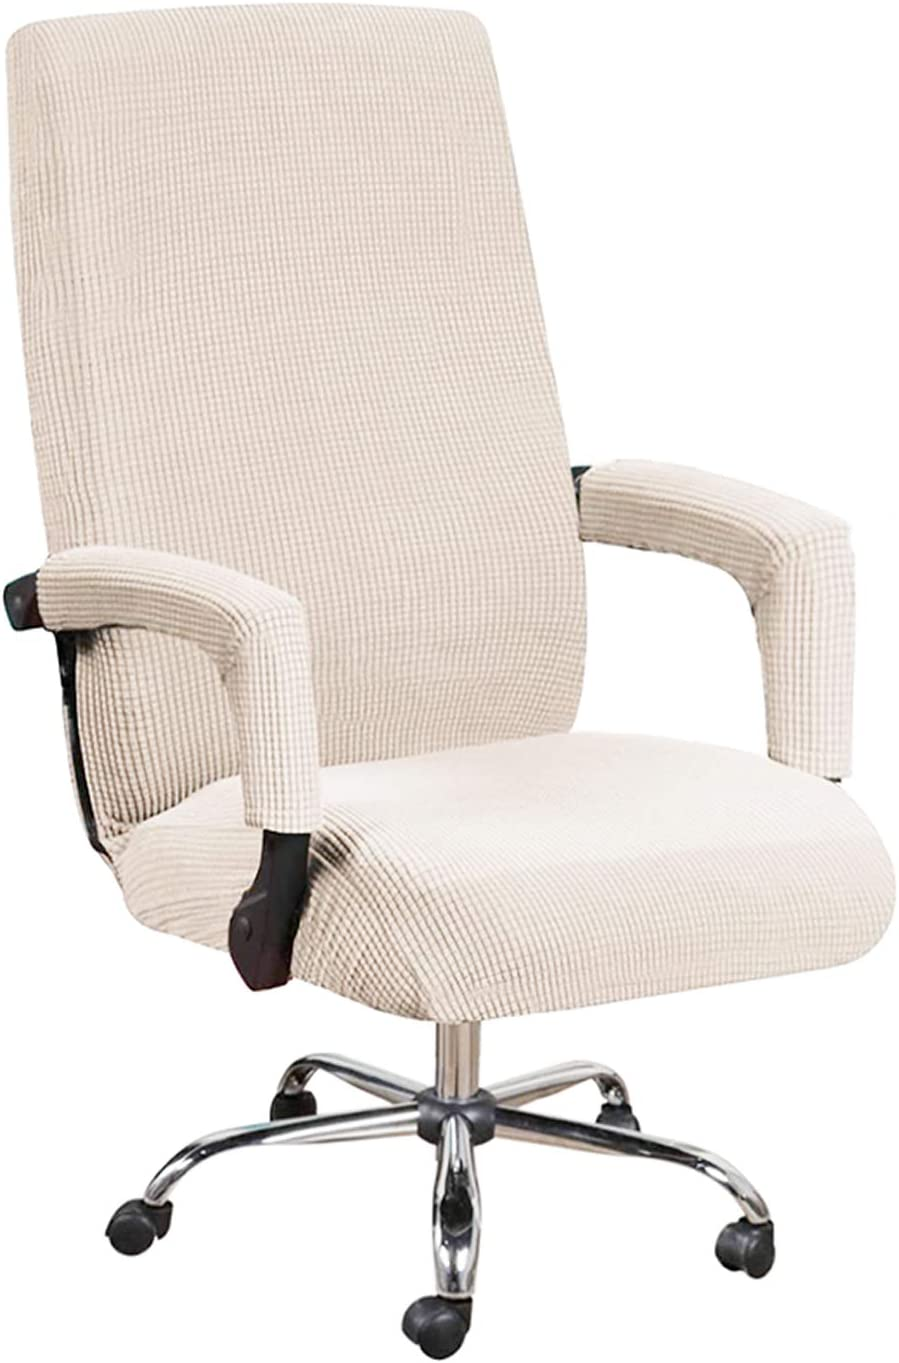 GAEA.TEX Office Chair Cover Computer Chair Boss Swivel Chair Slipcover Durable Stretch Soft Protector with Arm Covers (Large, Natural)